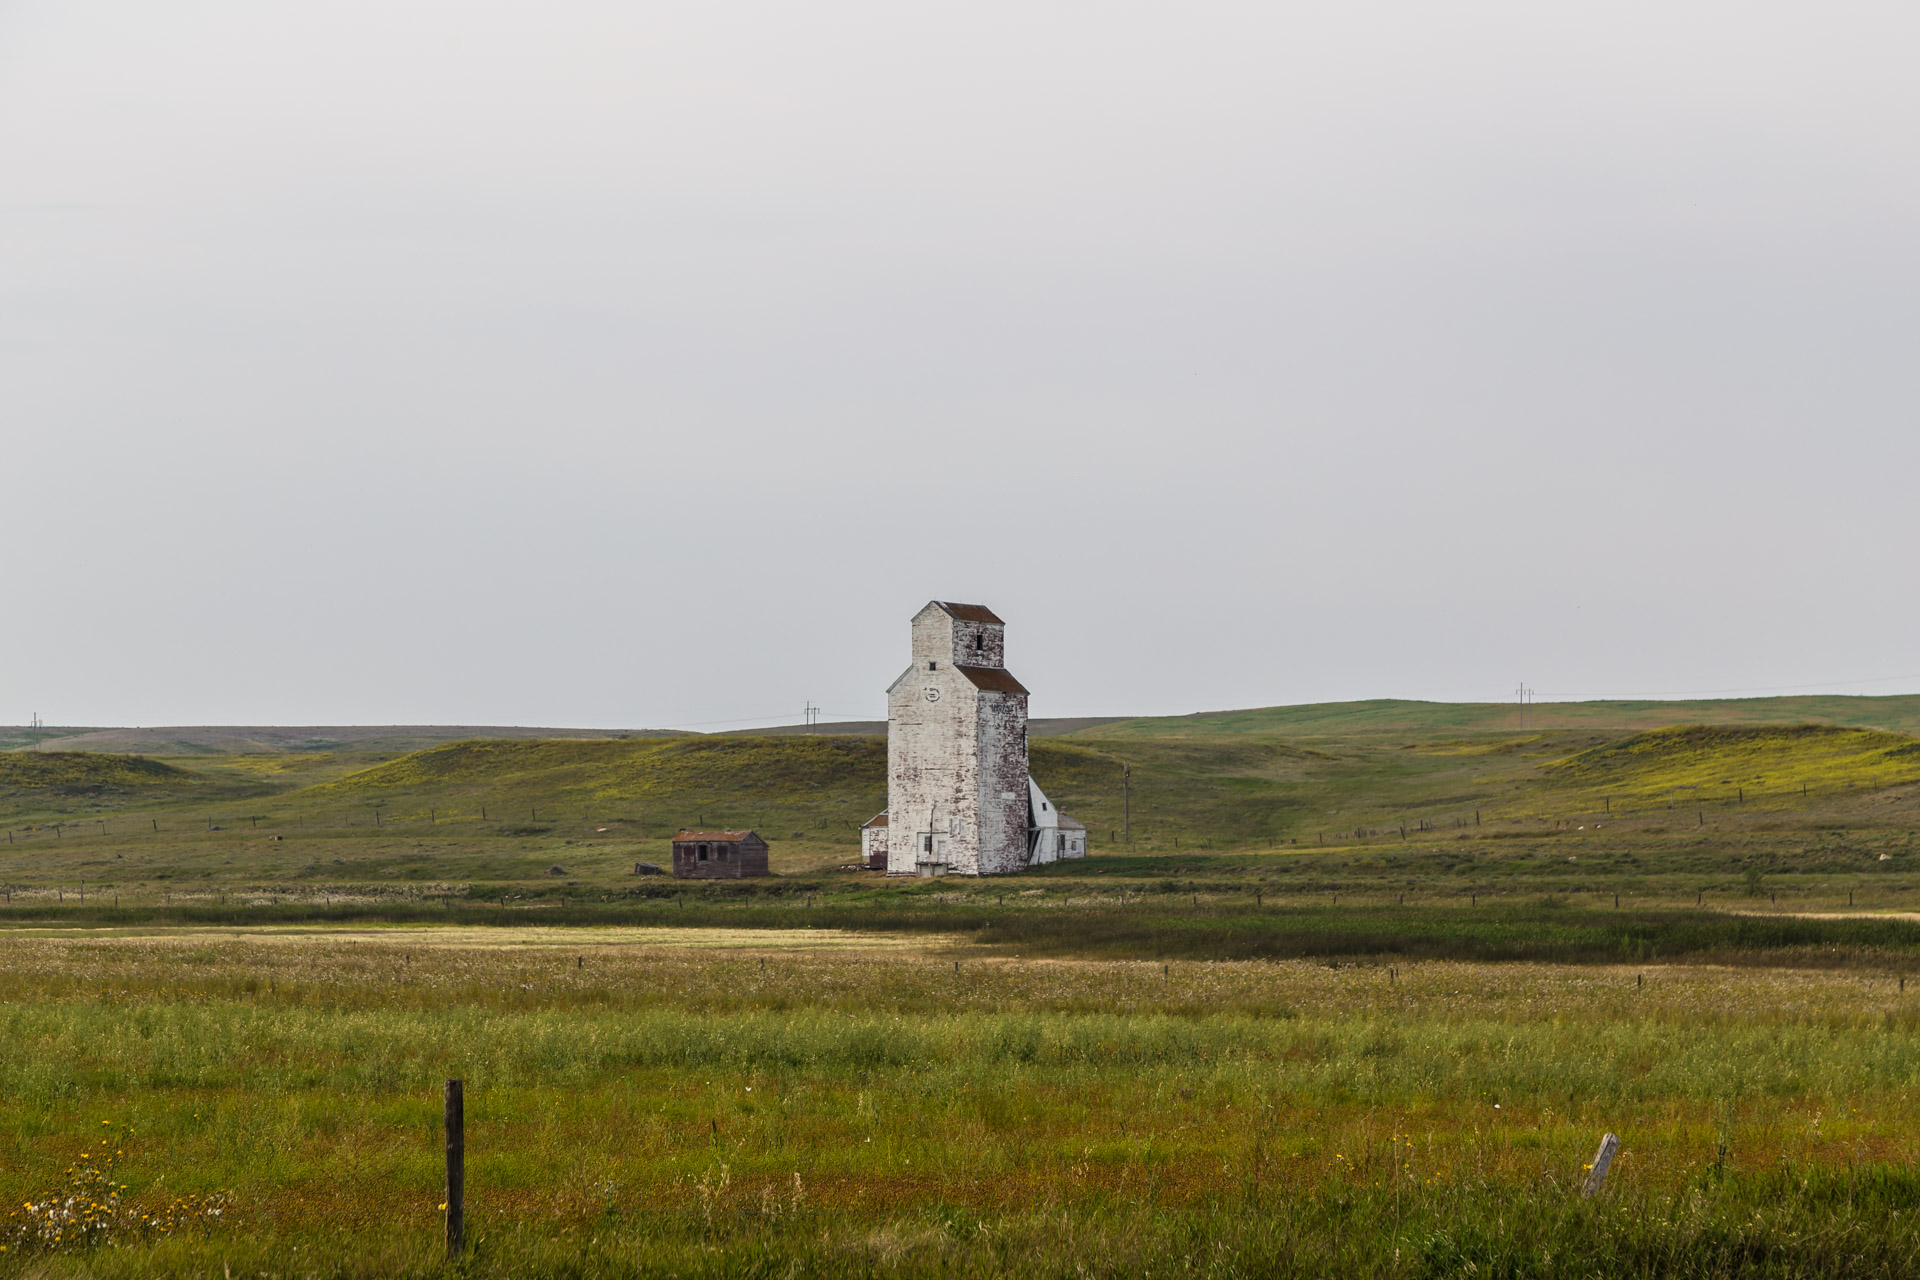 Central Butte, Saskatchewan, Canada - Lonely Grain Elevator